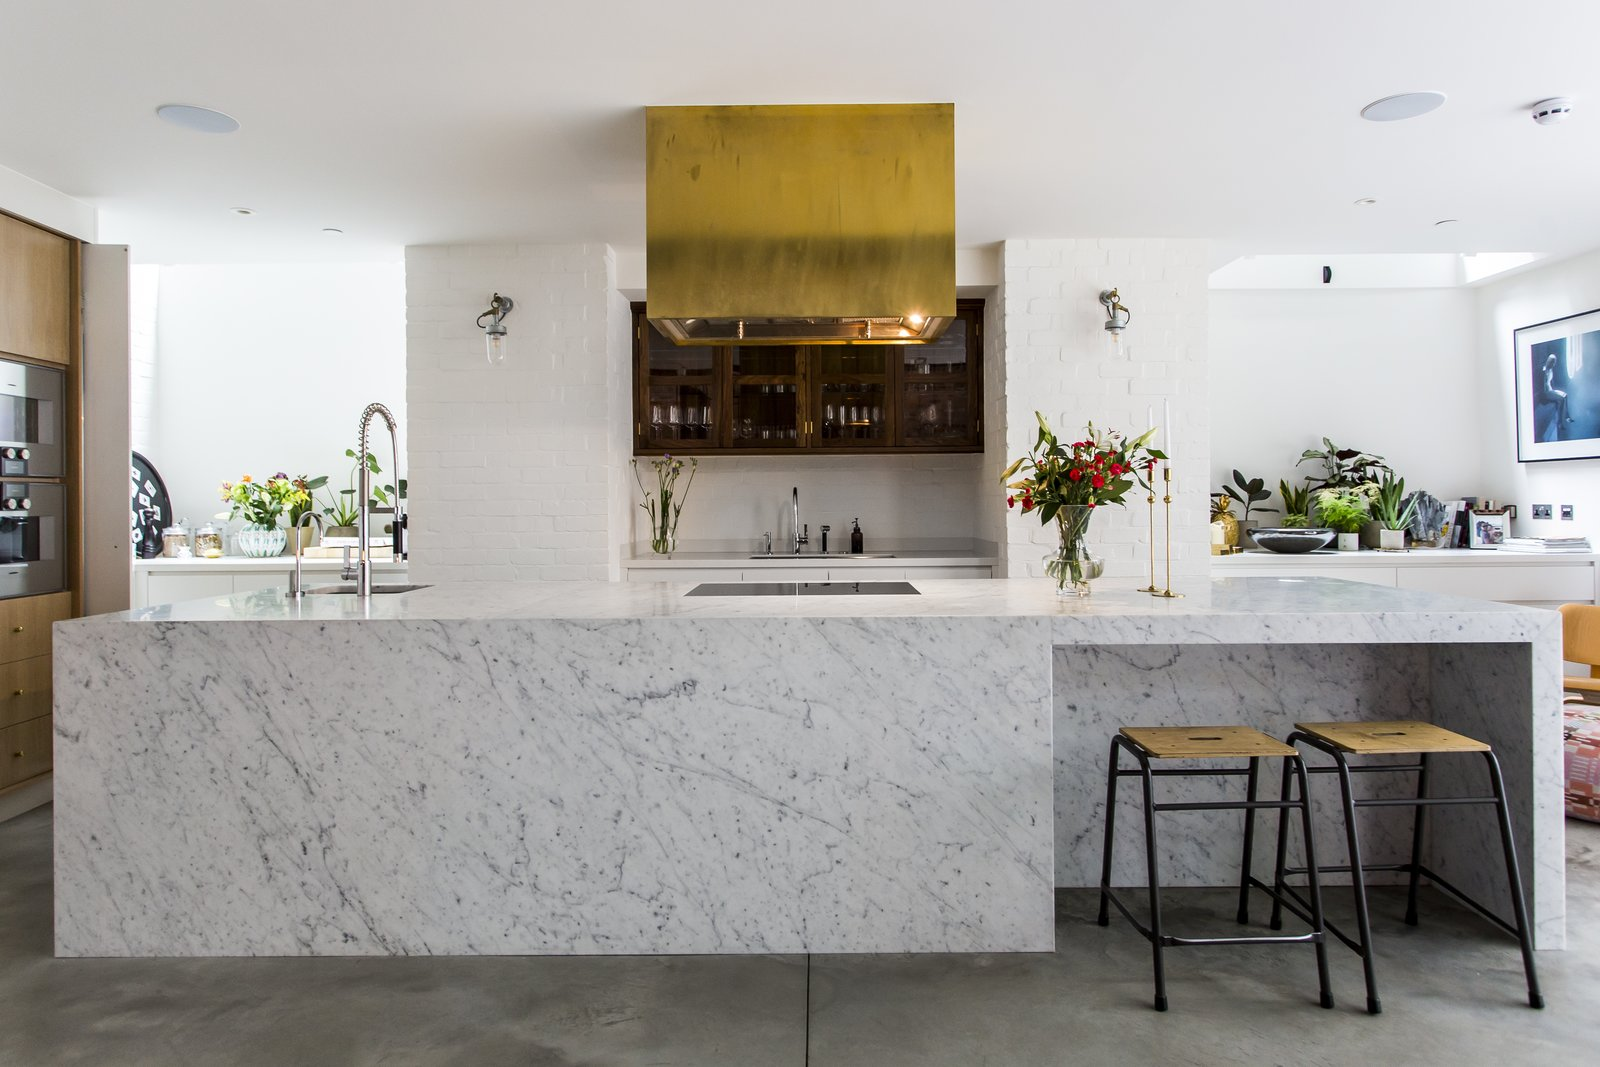 Brass finishings and an eye-catching range hood contrast with cool Carrara marble.  Photo 6 of 8 in Stay in a Converted Victorian Cooperage in London